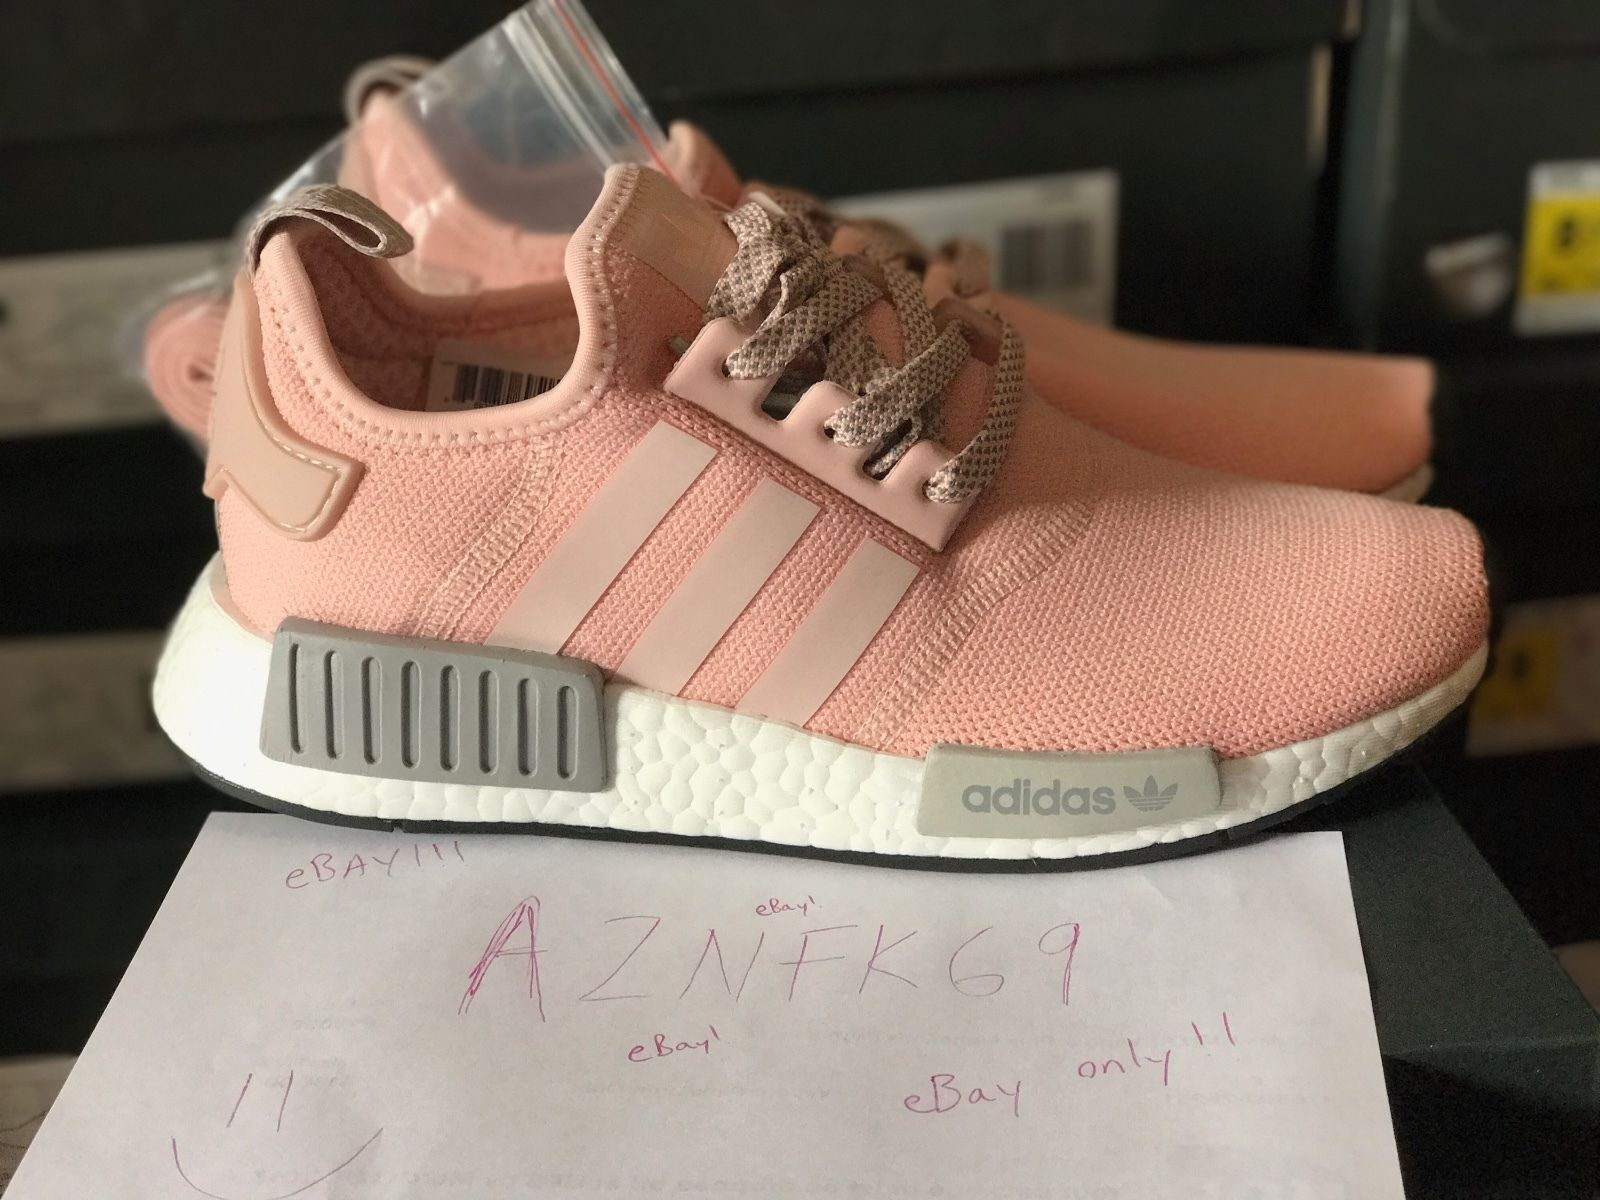 Adidas NMD R1 Runner Vapor Pink Light Onix Grey Offspring BY3059 Women's Price reduction Comfortable and good-looking